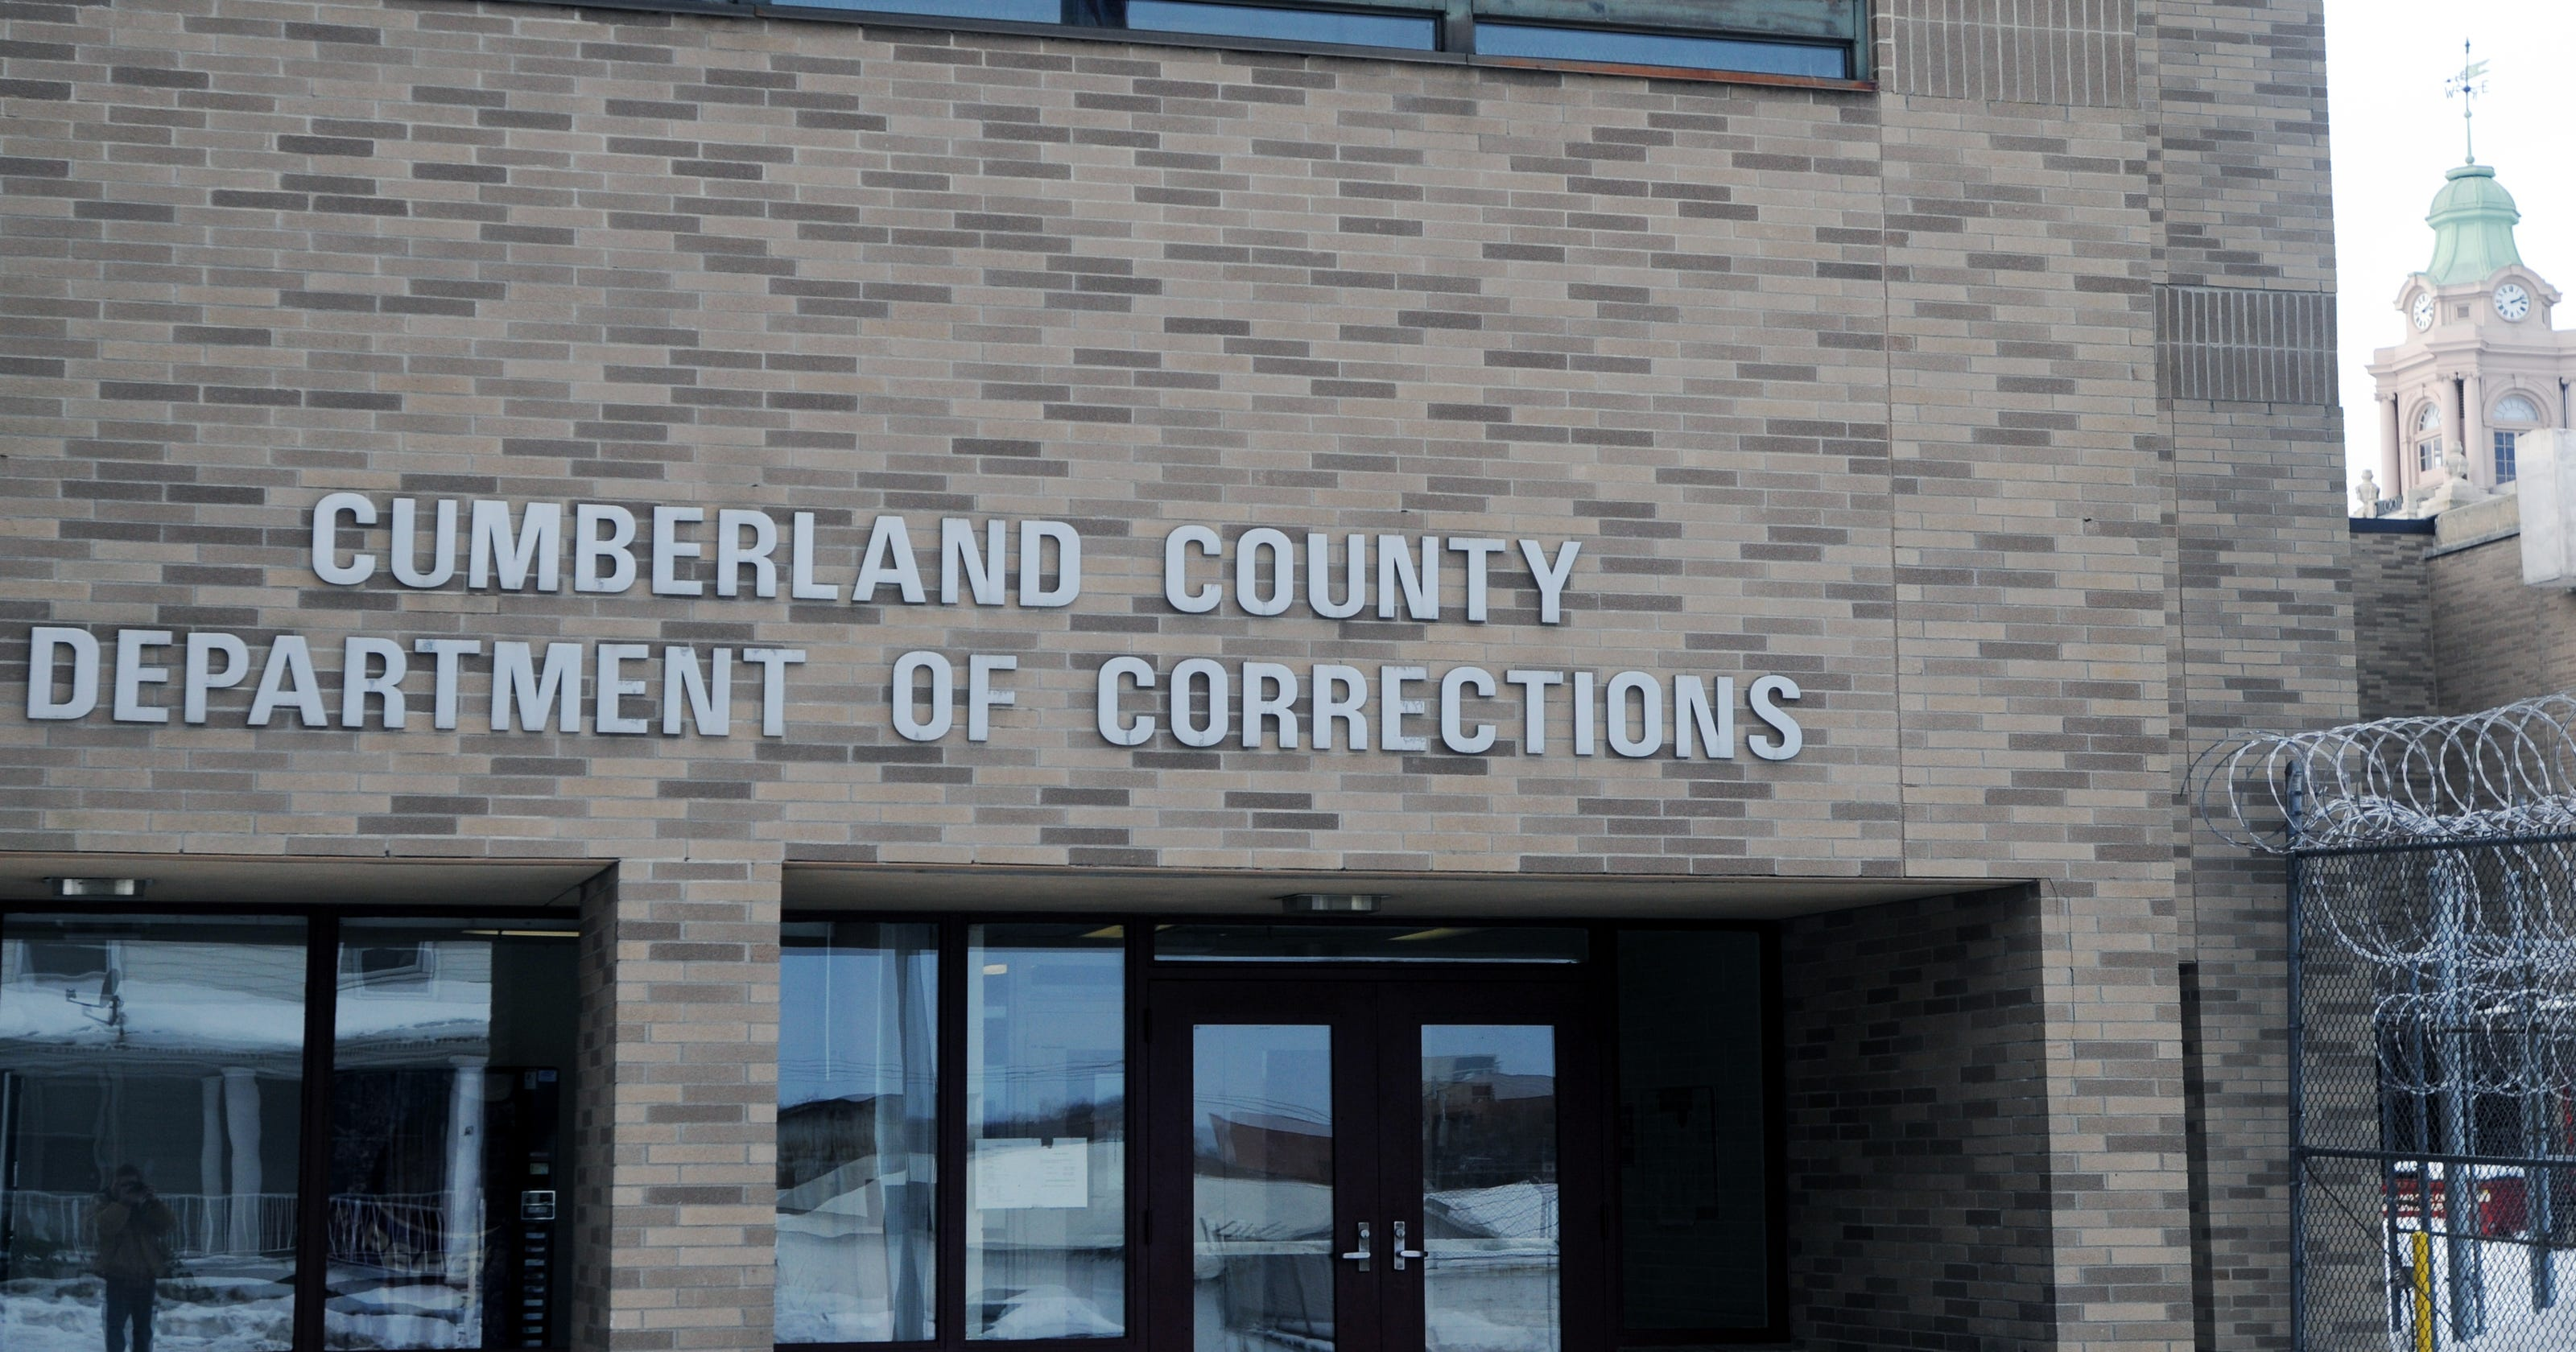 Cumberland County Jail officers forced inmate to have sex, suit says